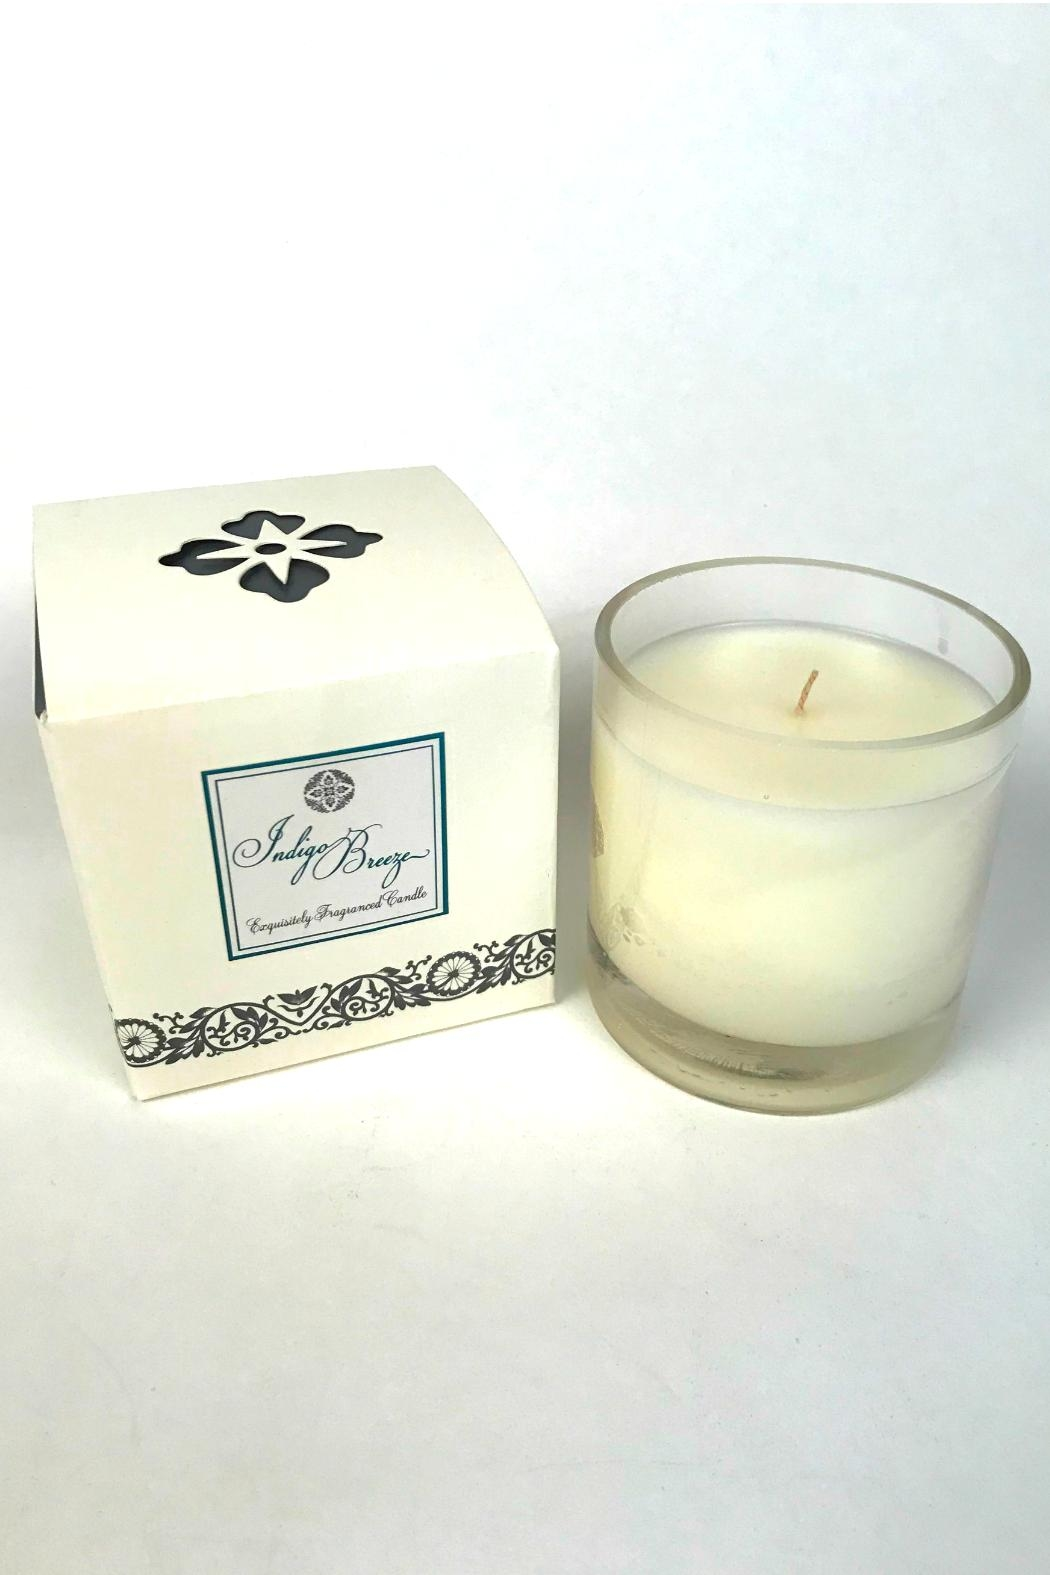 Zodax Indigo Breeze Candle - Main Image